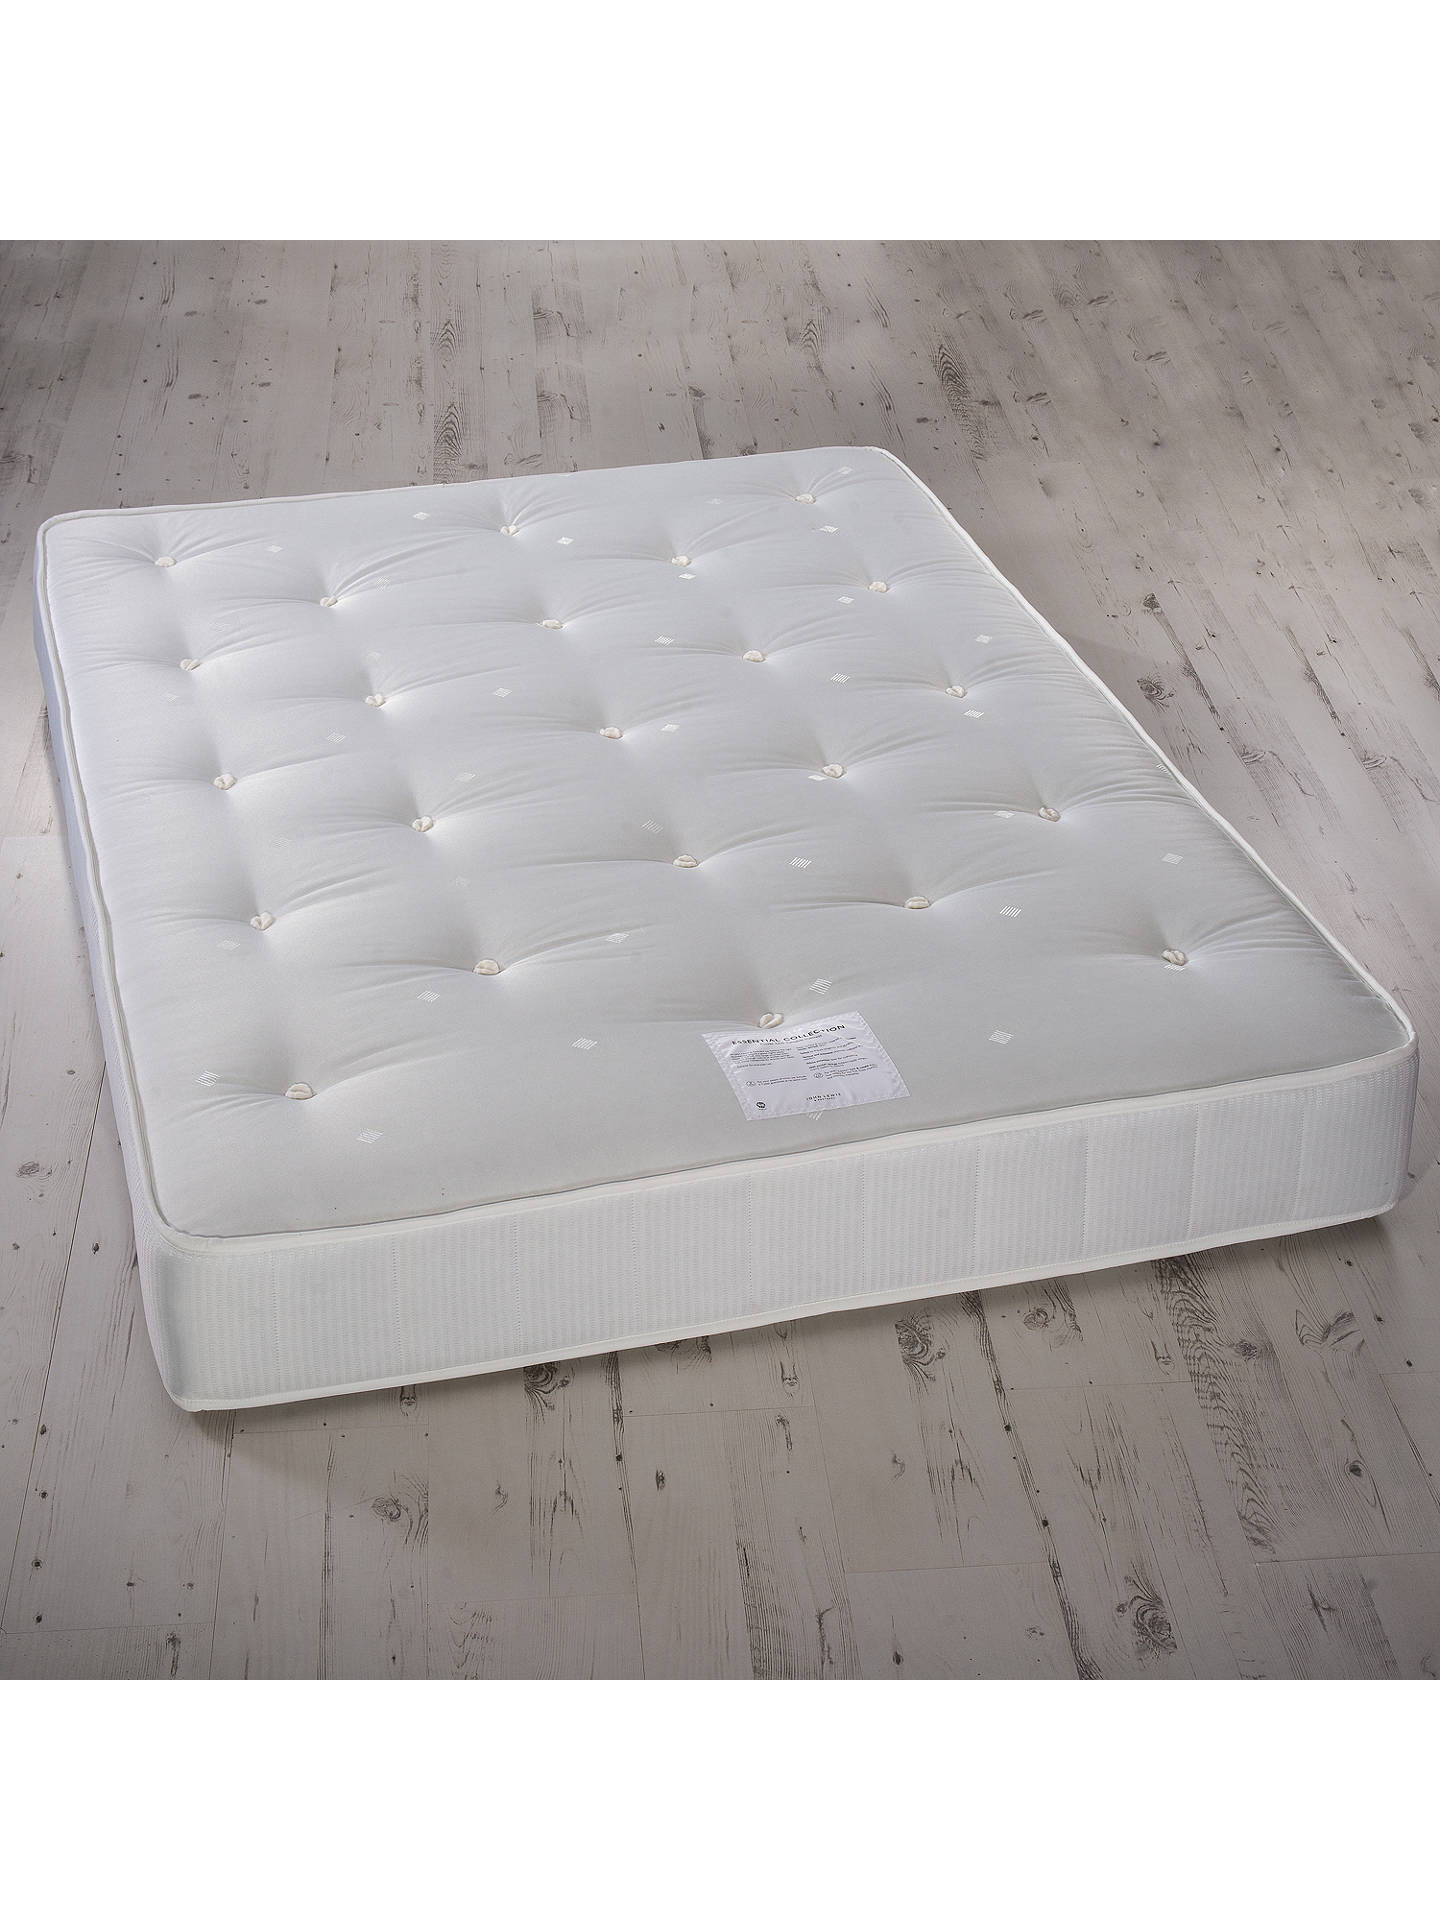 BuyJohn Lewis & Partners Essentials Collection Pocket 1000, Ortho Support, Pocket Spring Turnable Mattress, King Size Online at johnlewis.com